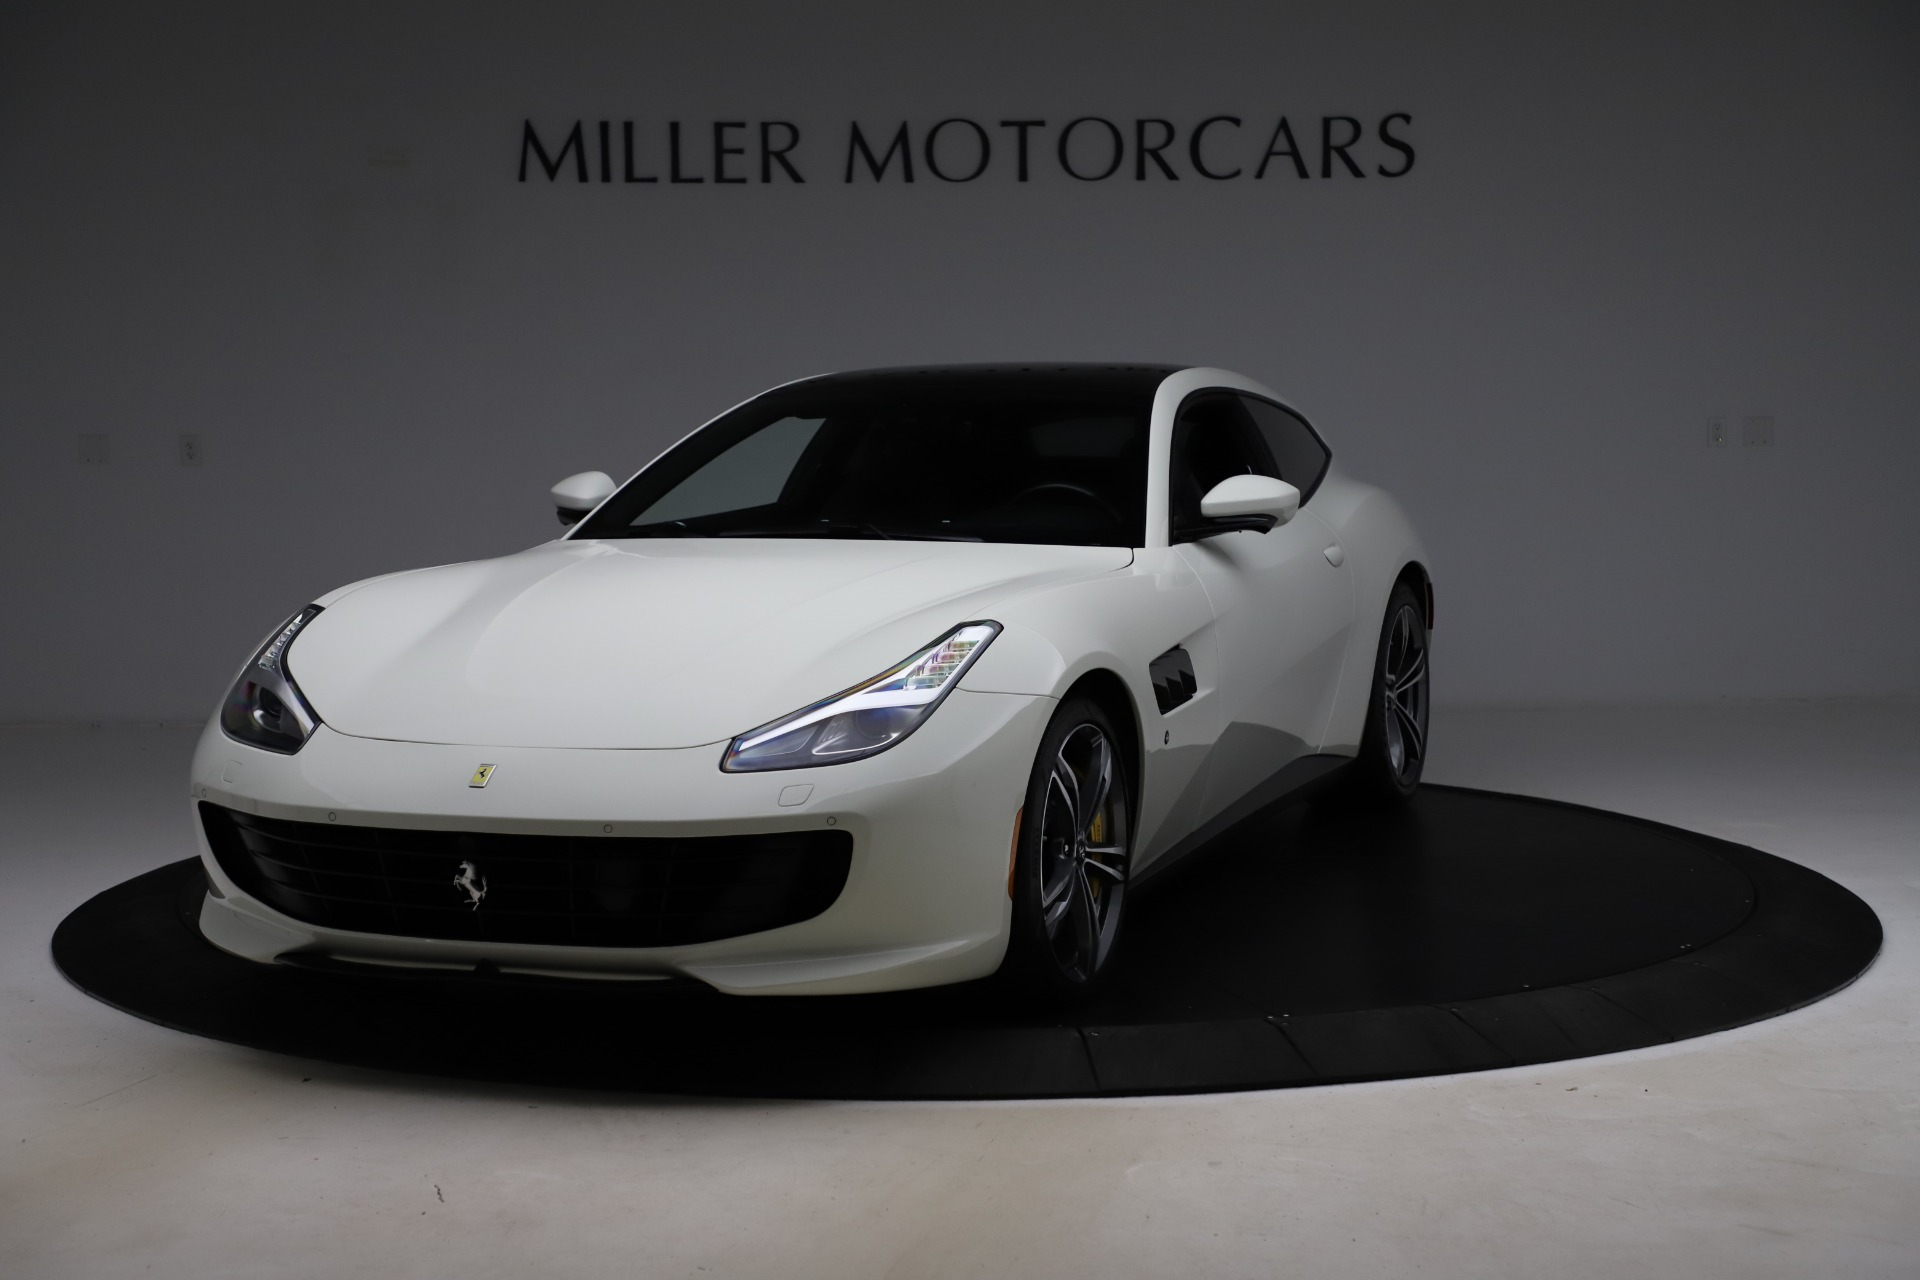 Used 2020 Ferrari GTC4Lusso for sale $264,900 at Pagani of Greenwich in Greenwich CT 06830 1